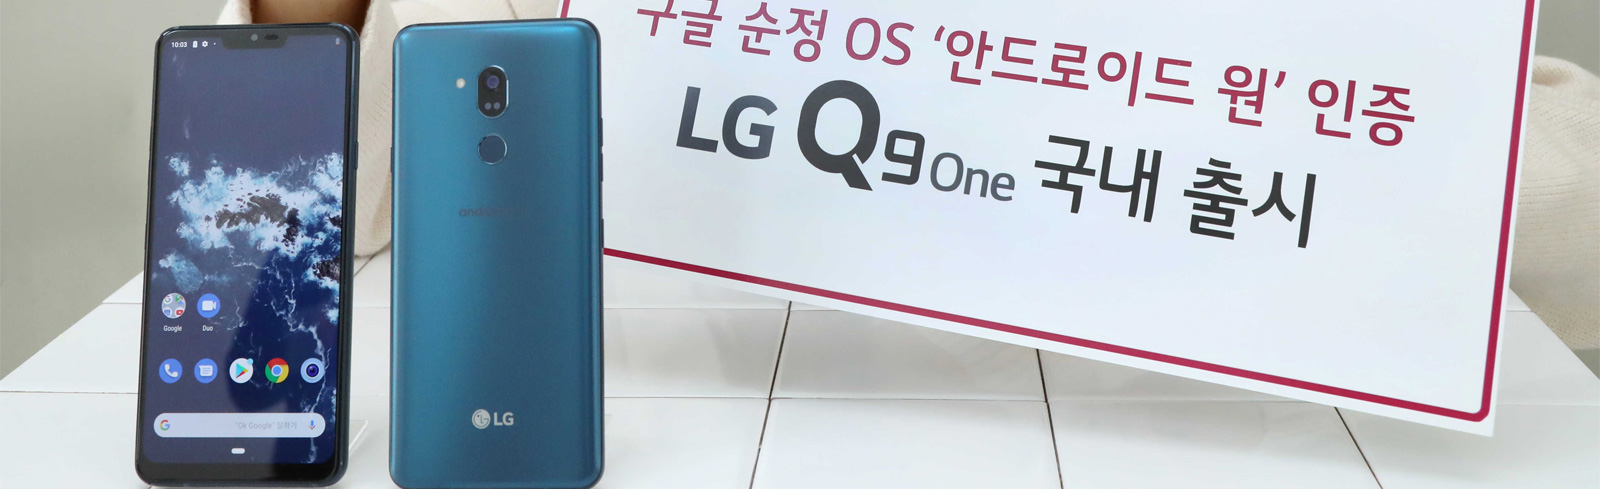 LG Q9 one goes official with Android 9 Pie, Snapdragon 835